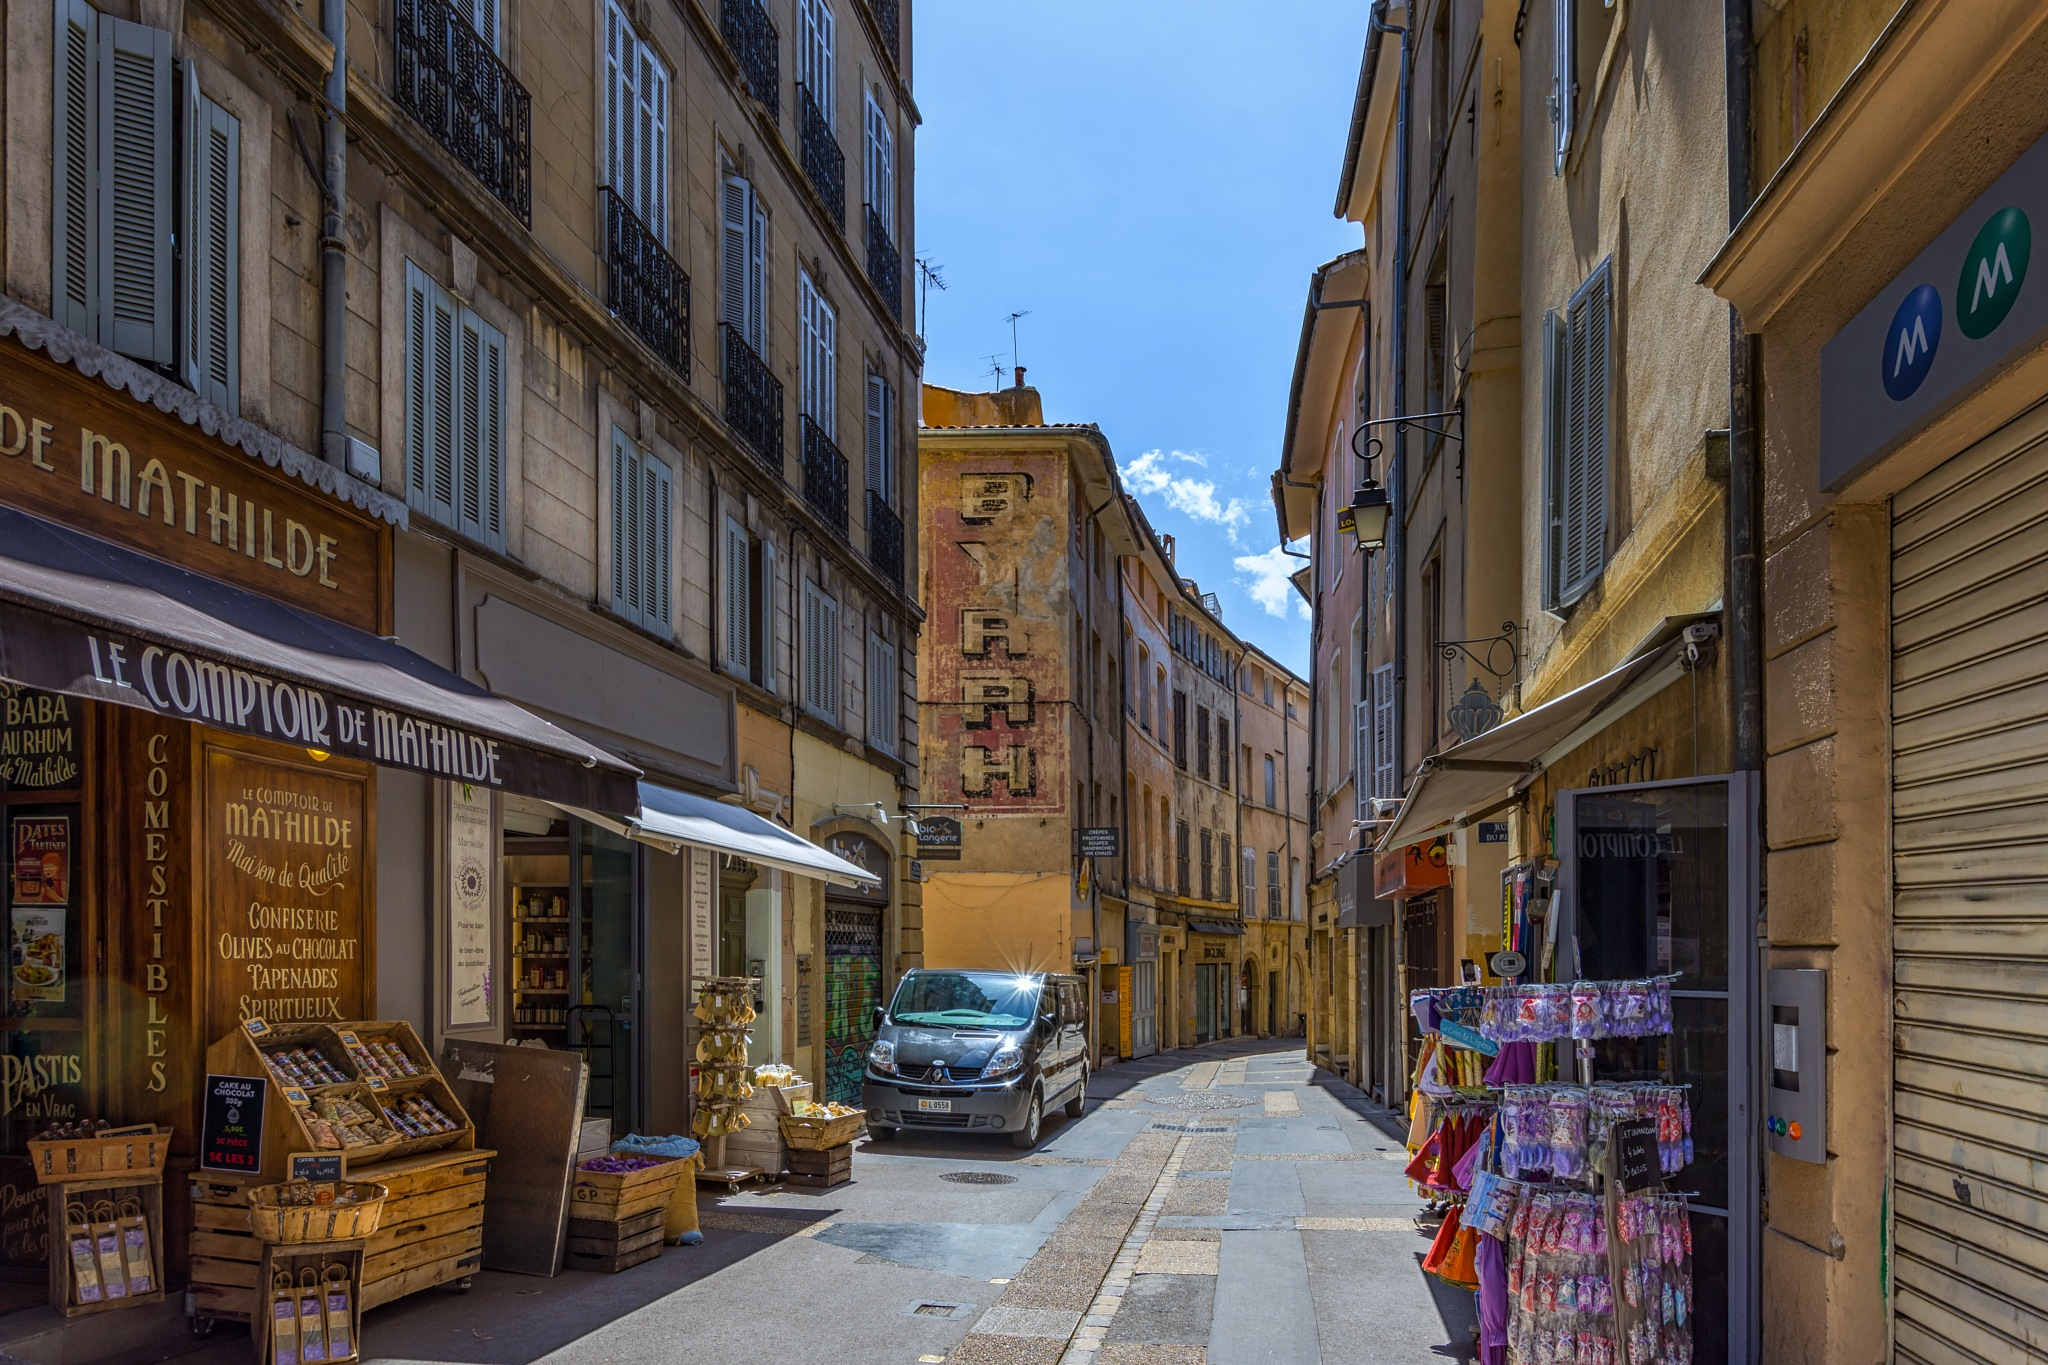 Streets of Aix-en-Provence by Awende